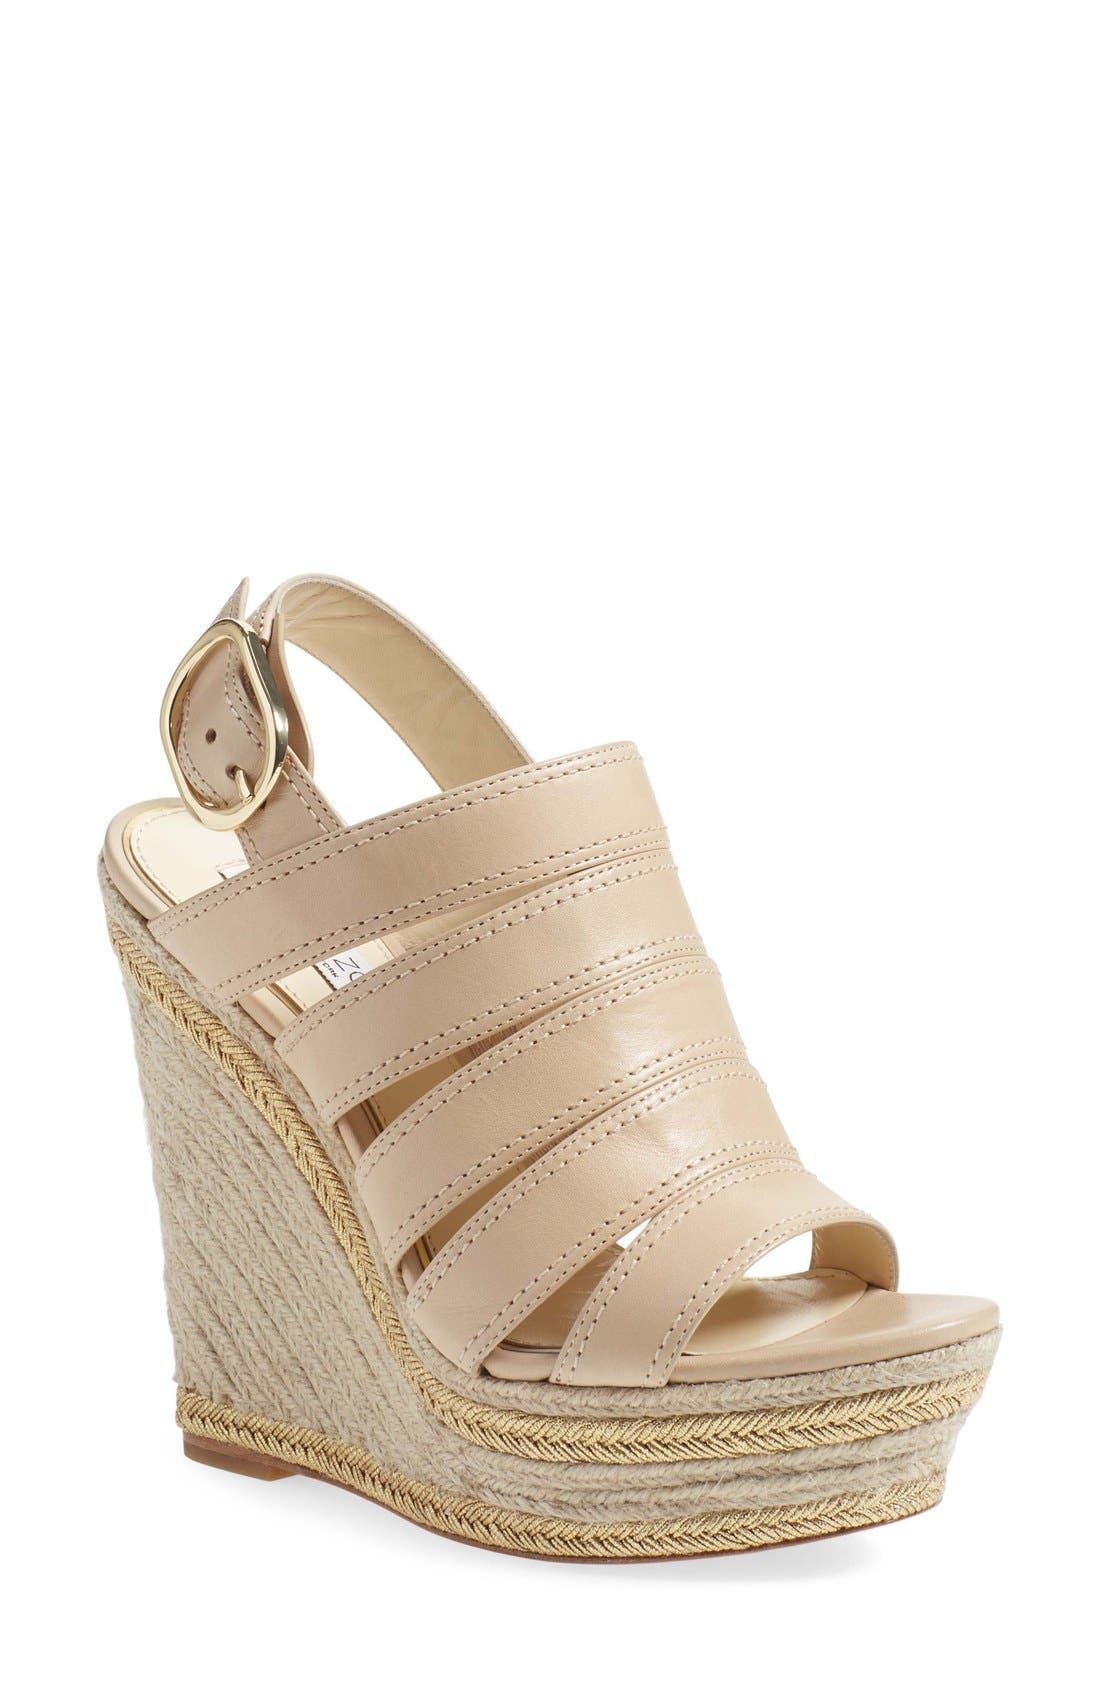 Alternate Image 1 Selected - Rachel Zoe 'Gia' Sandal (Women)